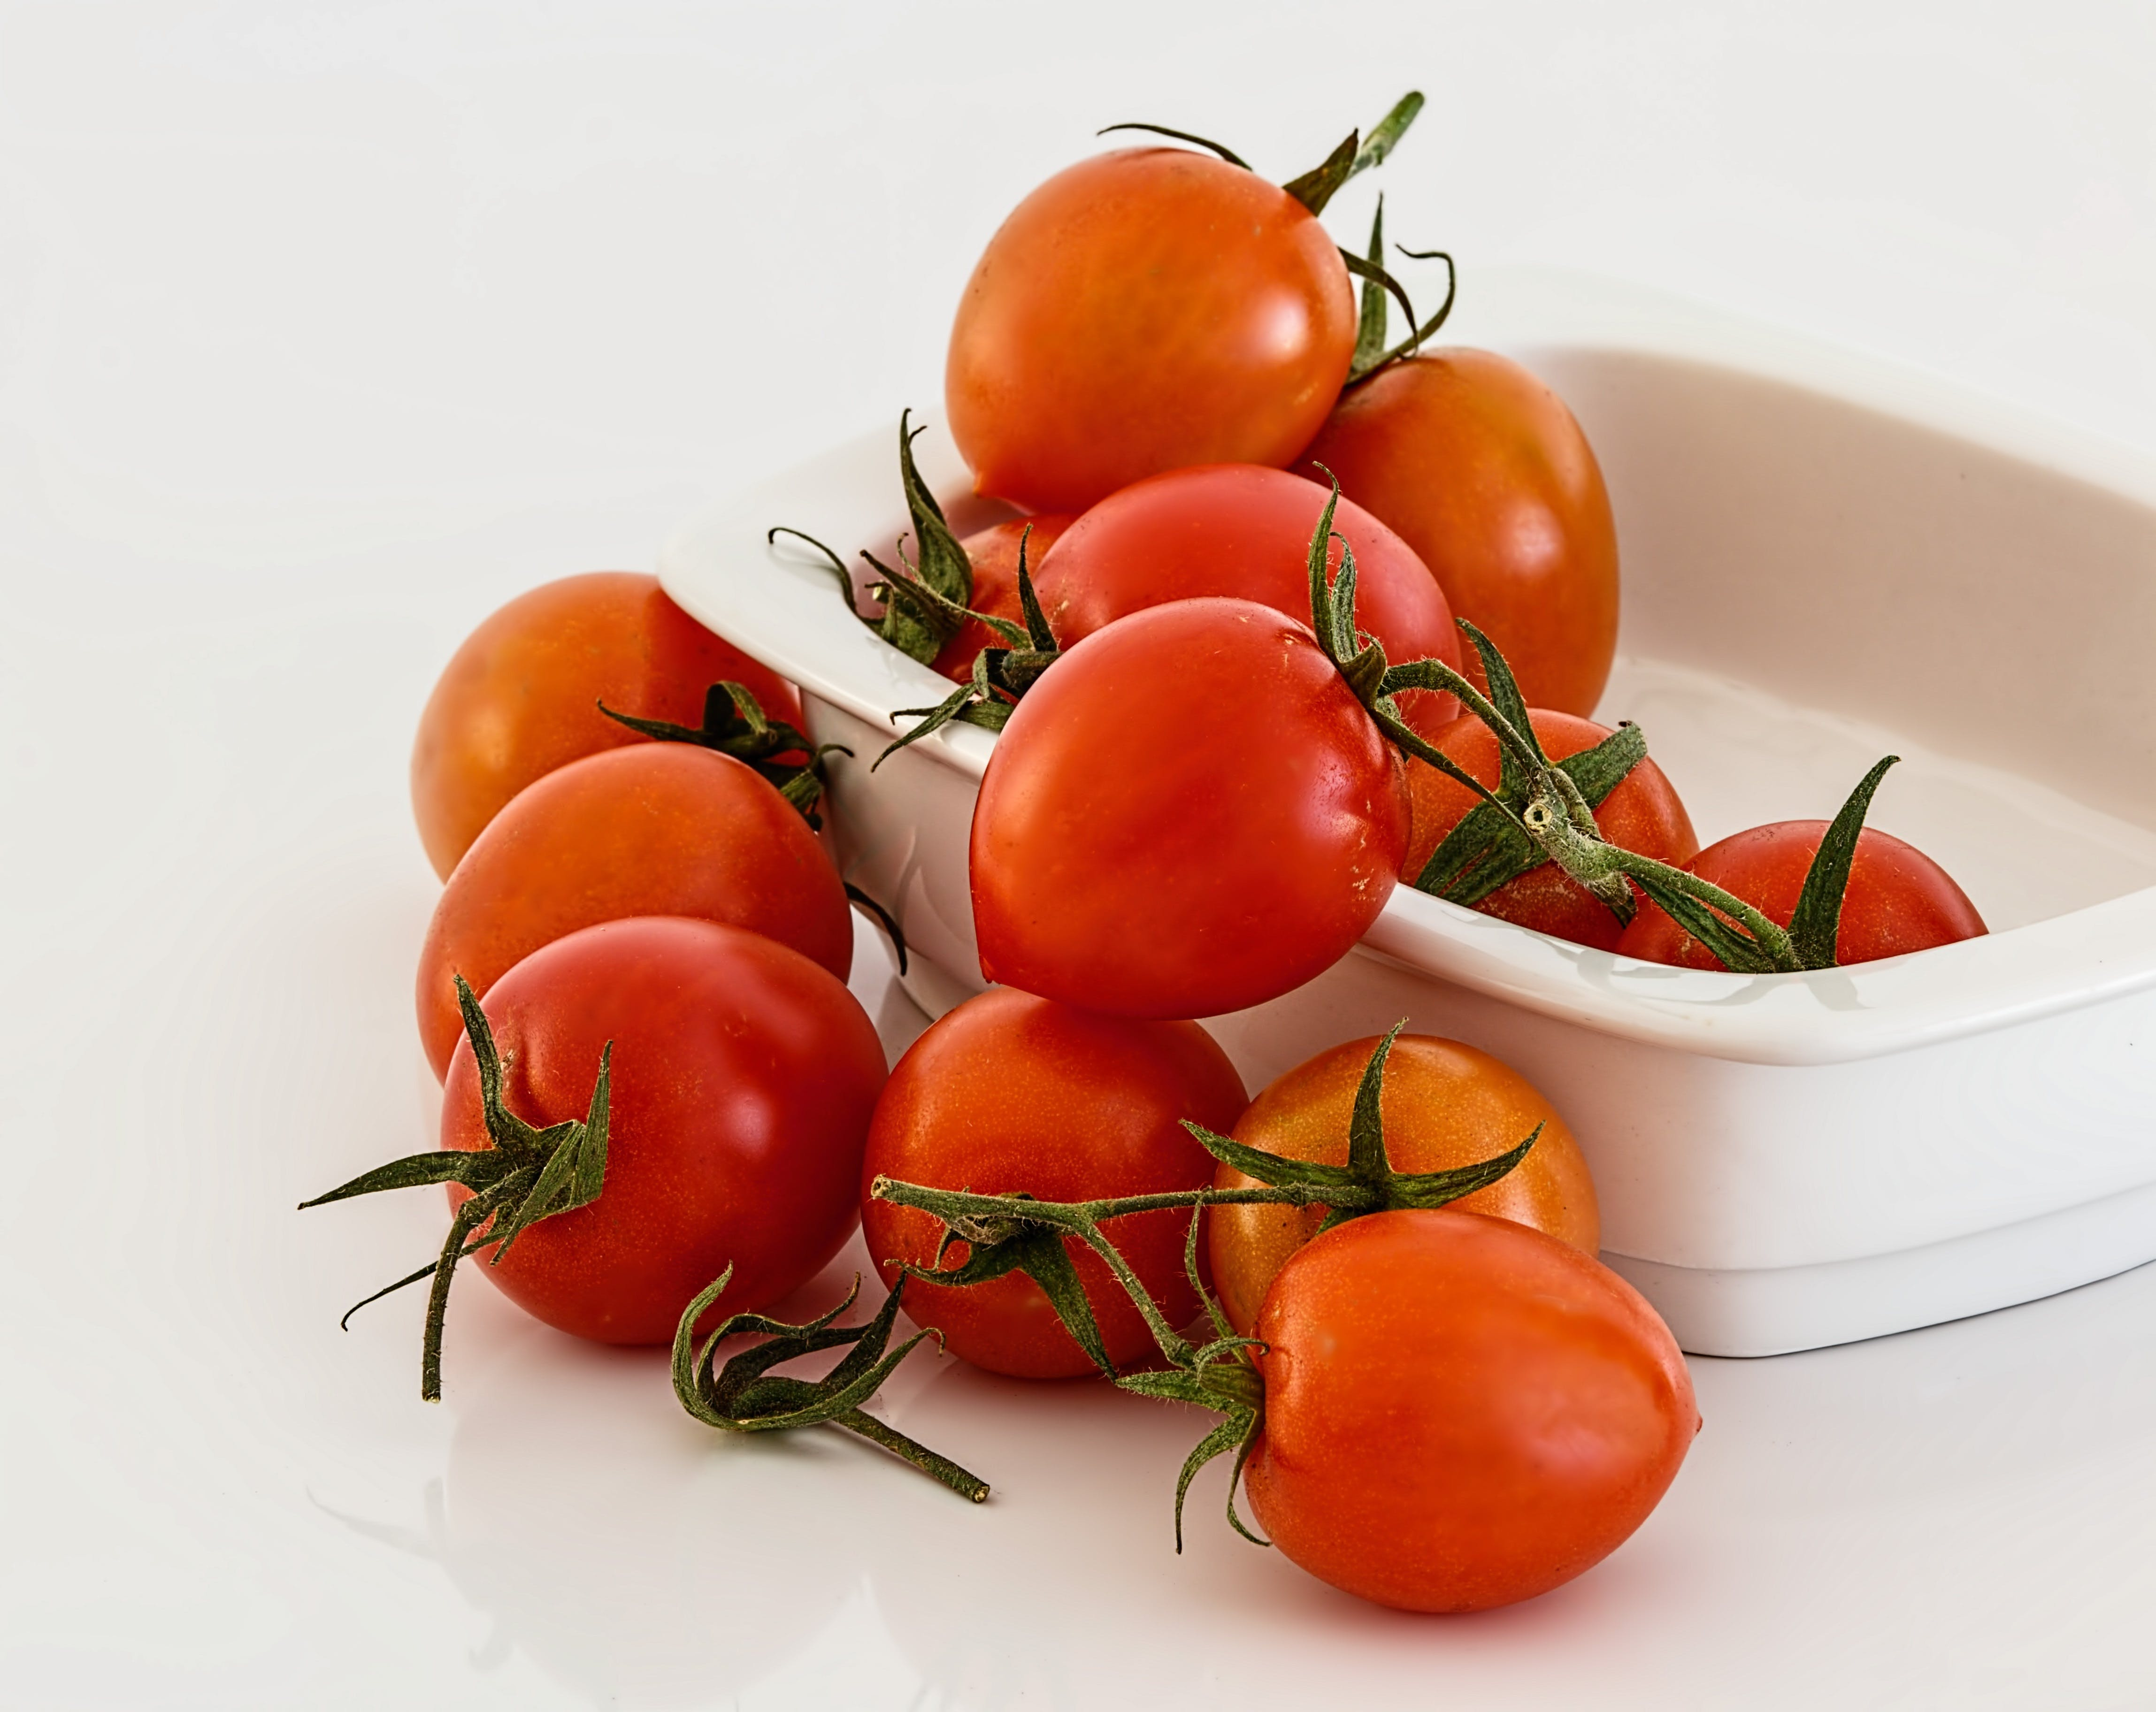 Red Tomatoes on White Bowl